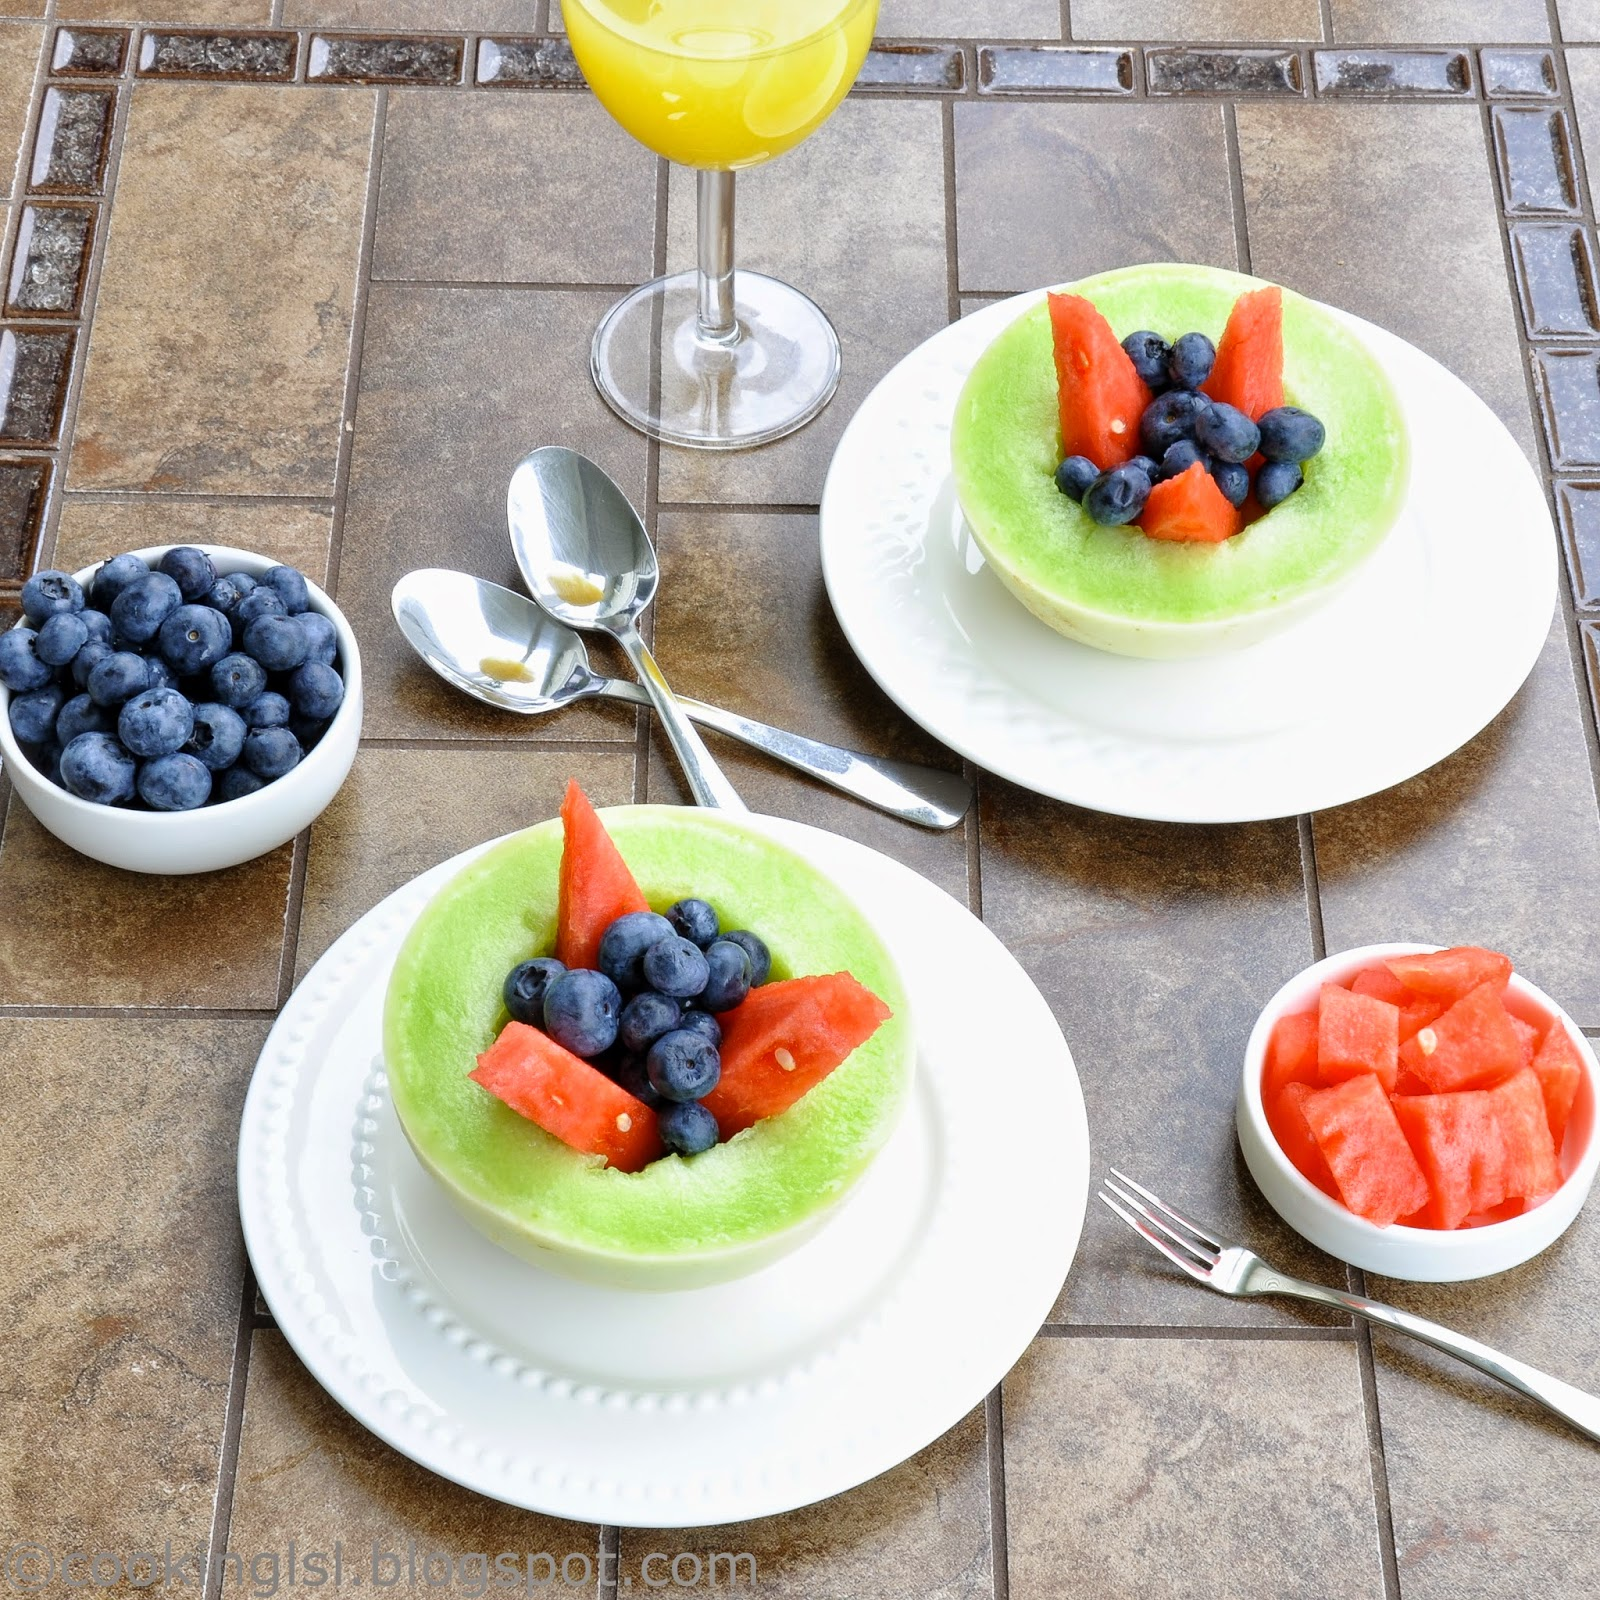 Easy-Honeydew-Dew-Melon-Fruit-Salad-Watermelon-Blueberries-Refreshing-Summer